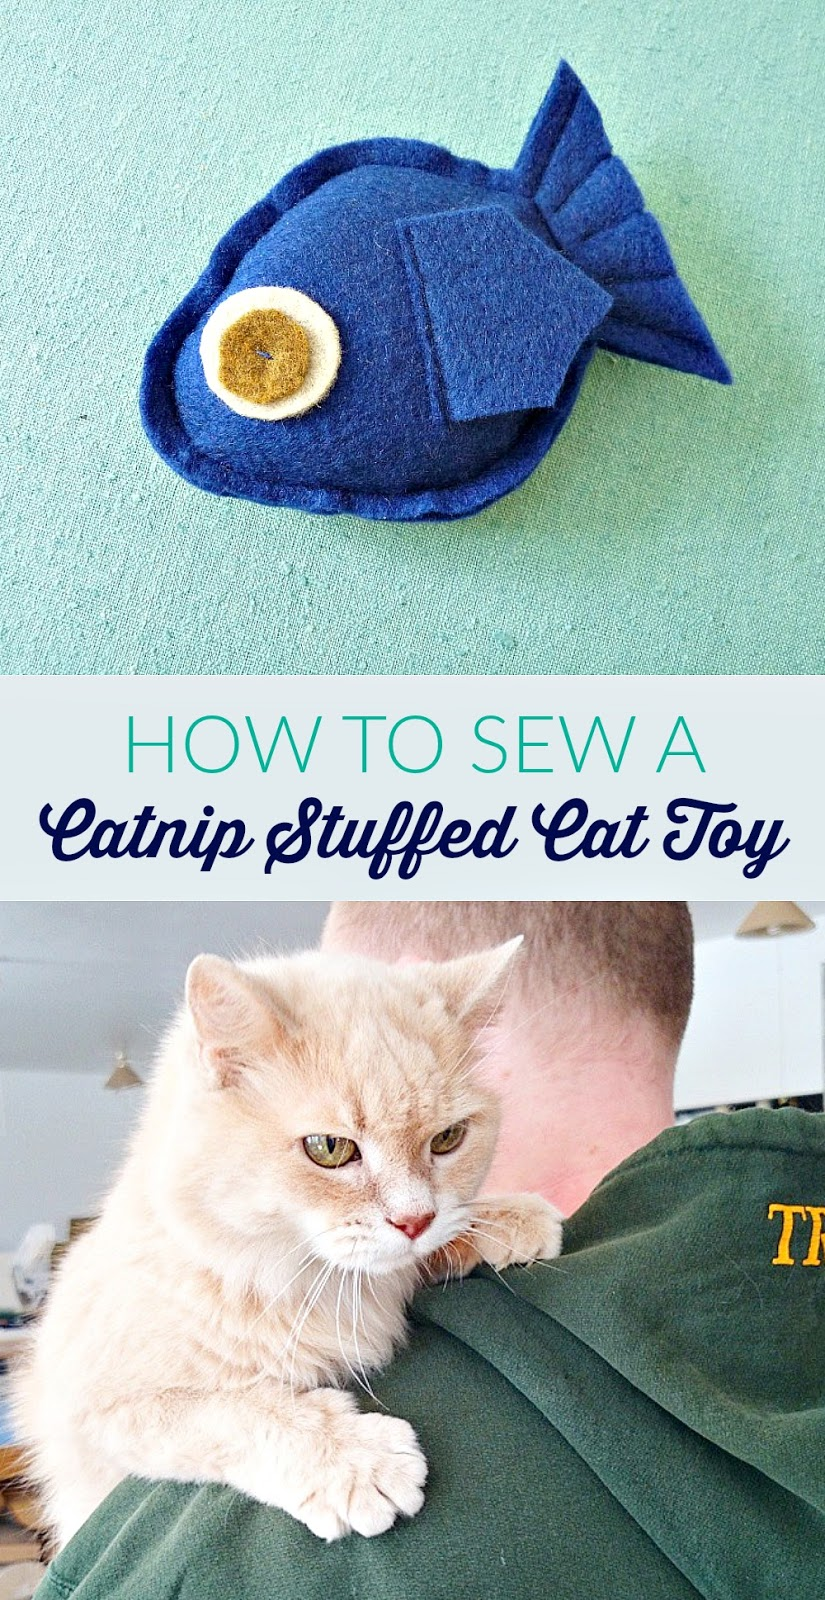 How to make your own catnip cat toy